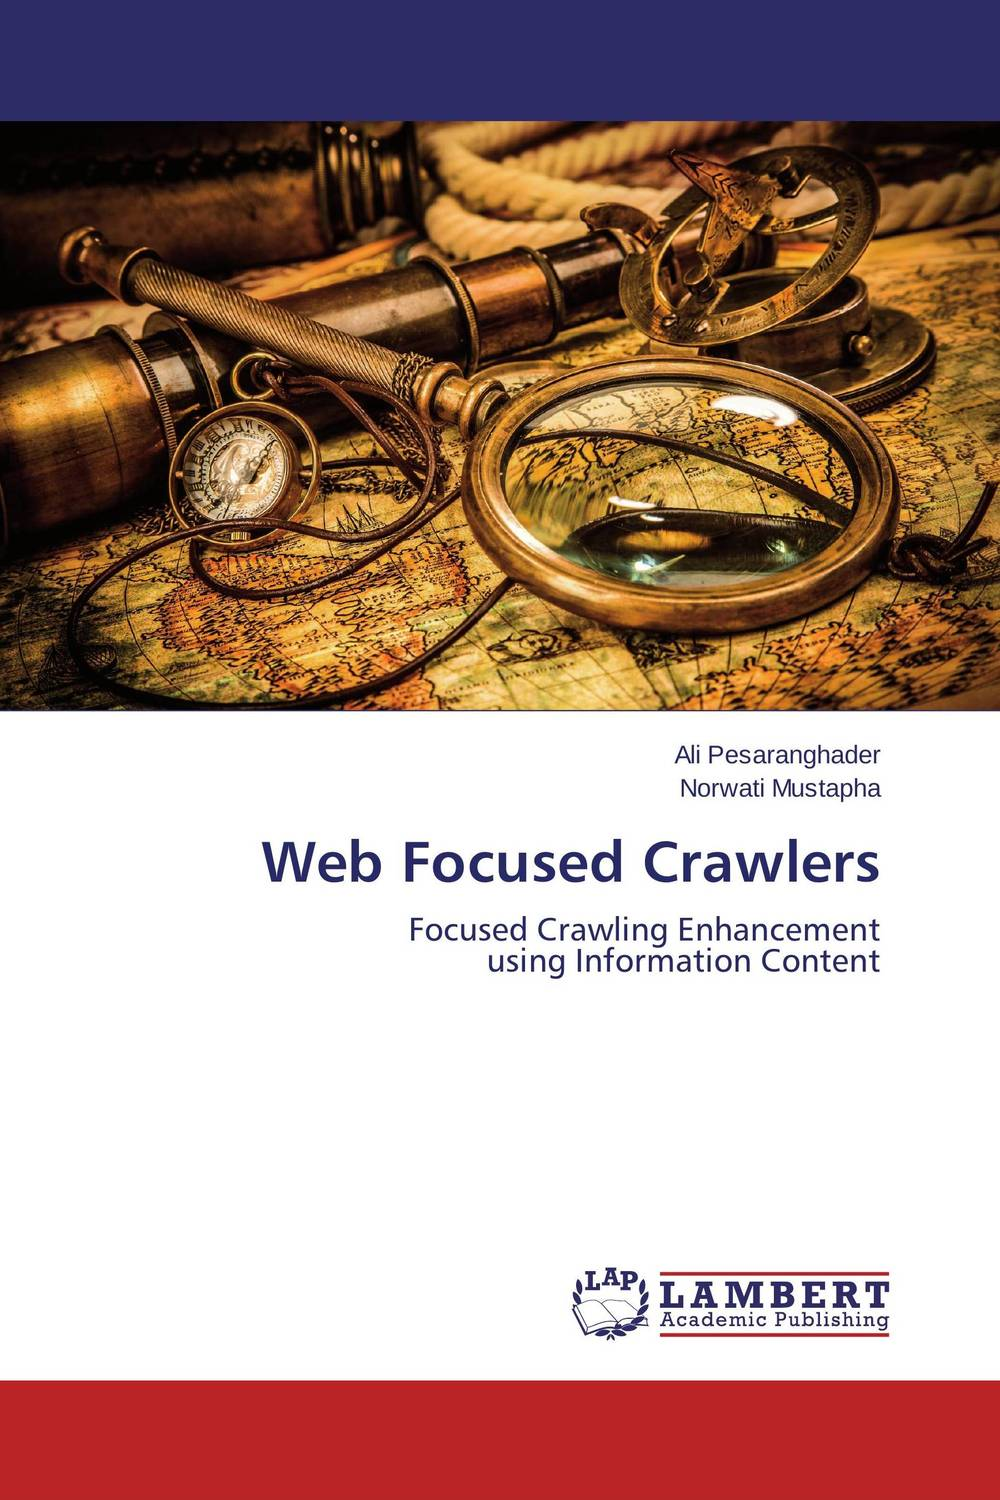 Web Focused Crawlers belousov a security features of banknotes and other documents methods of authentication manual денежные билеты бланки ценных бумаг и документов